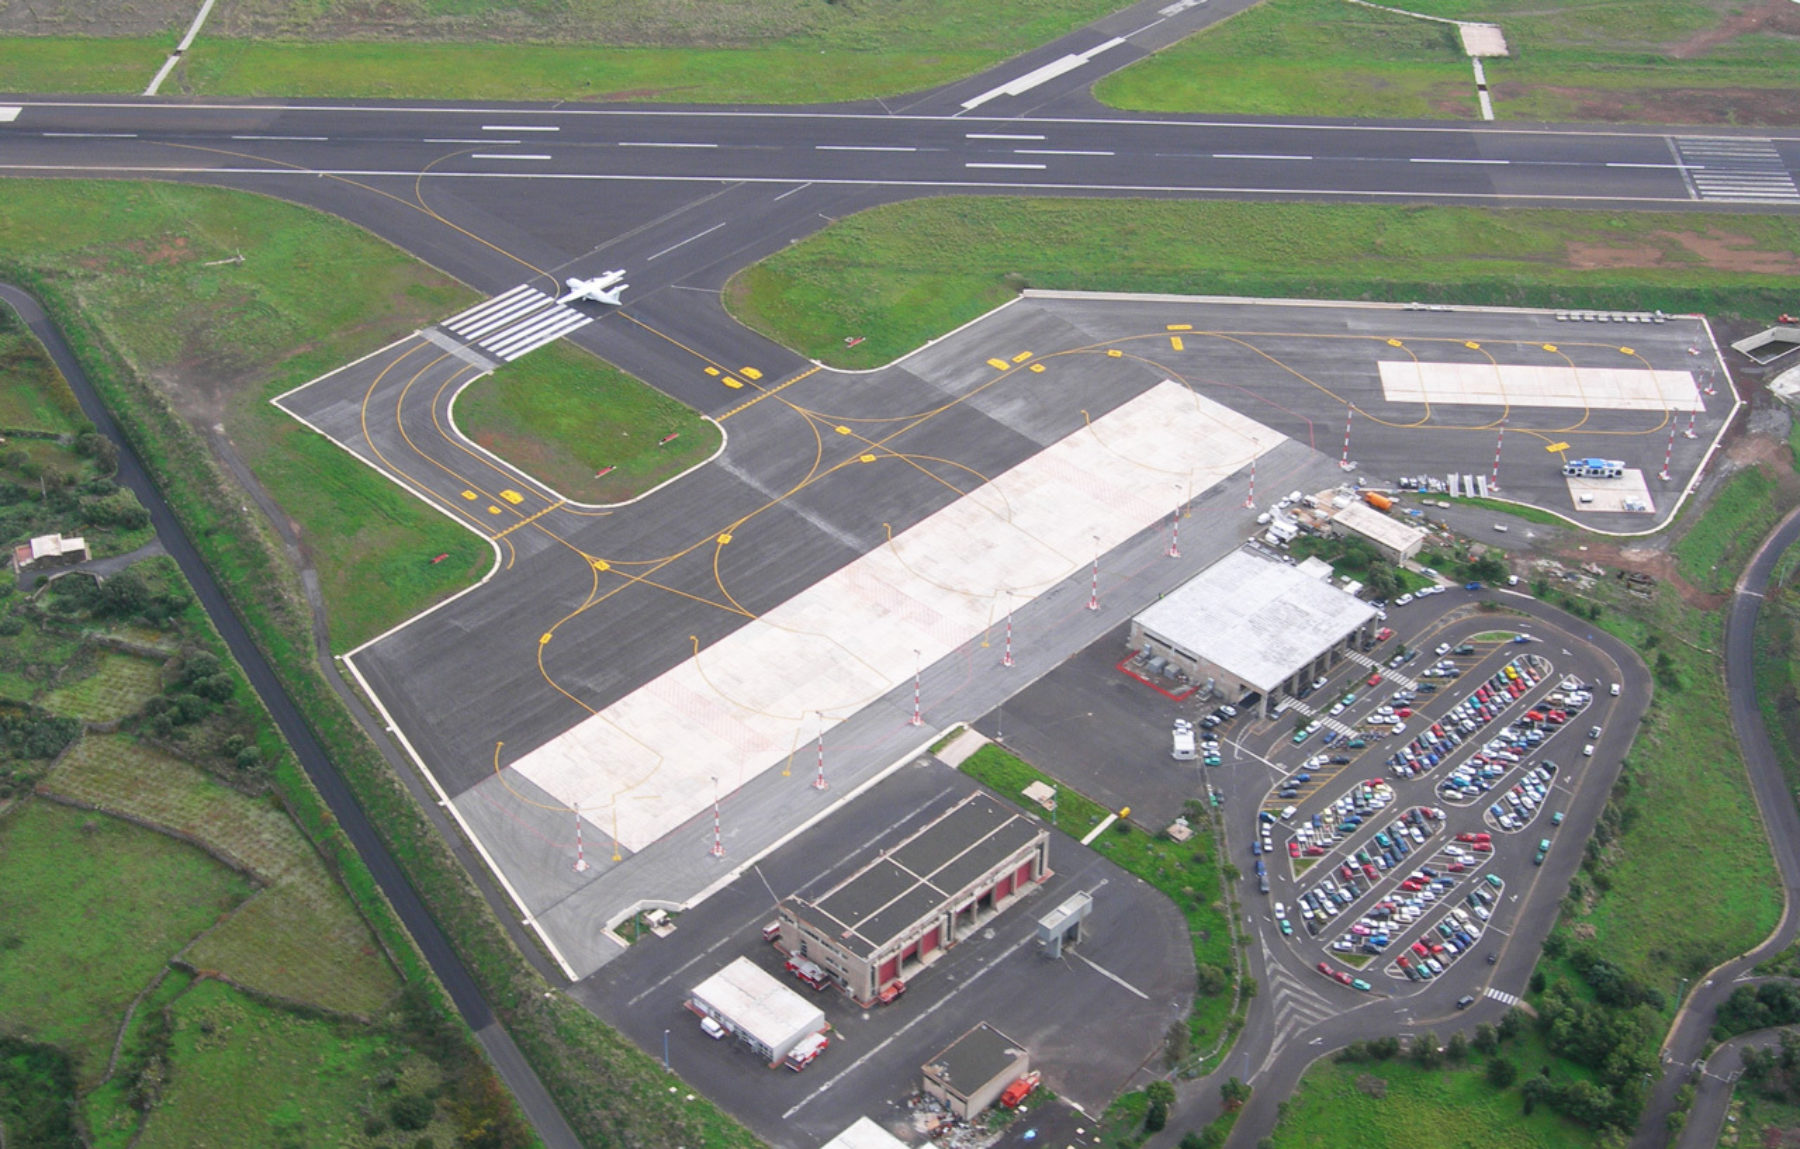 Pantelleria Airport (PNL): Apron and Runway Extension